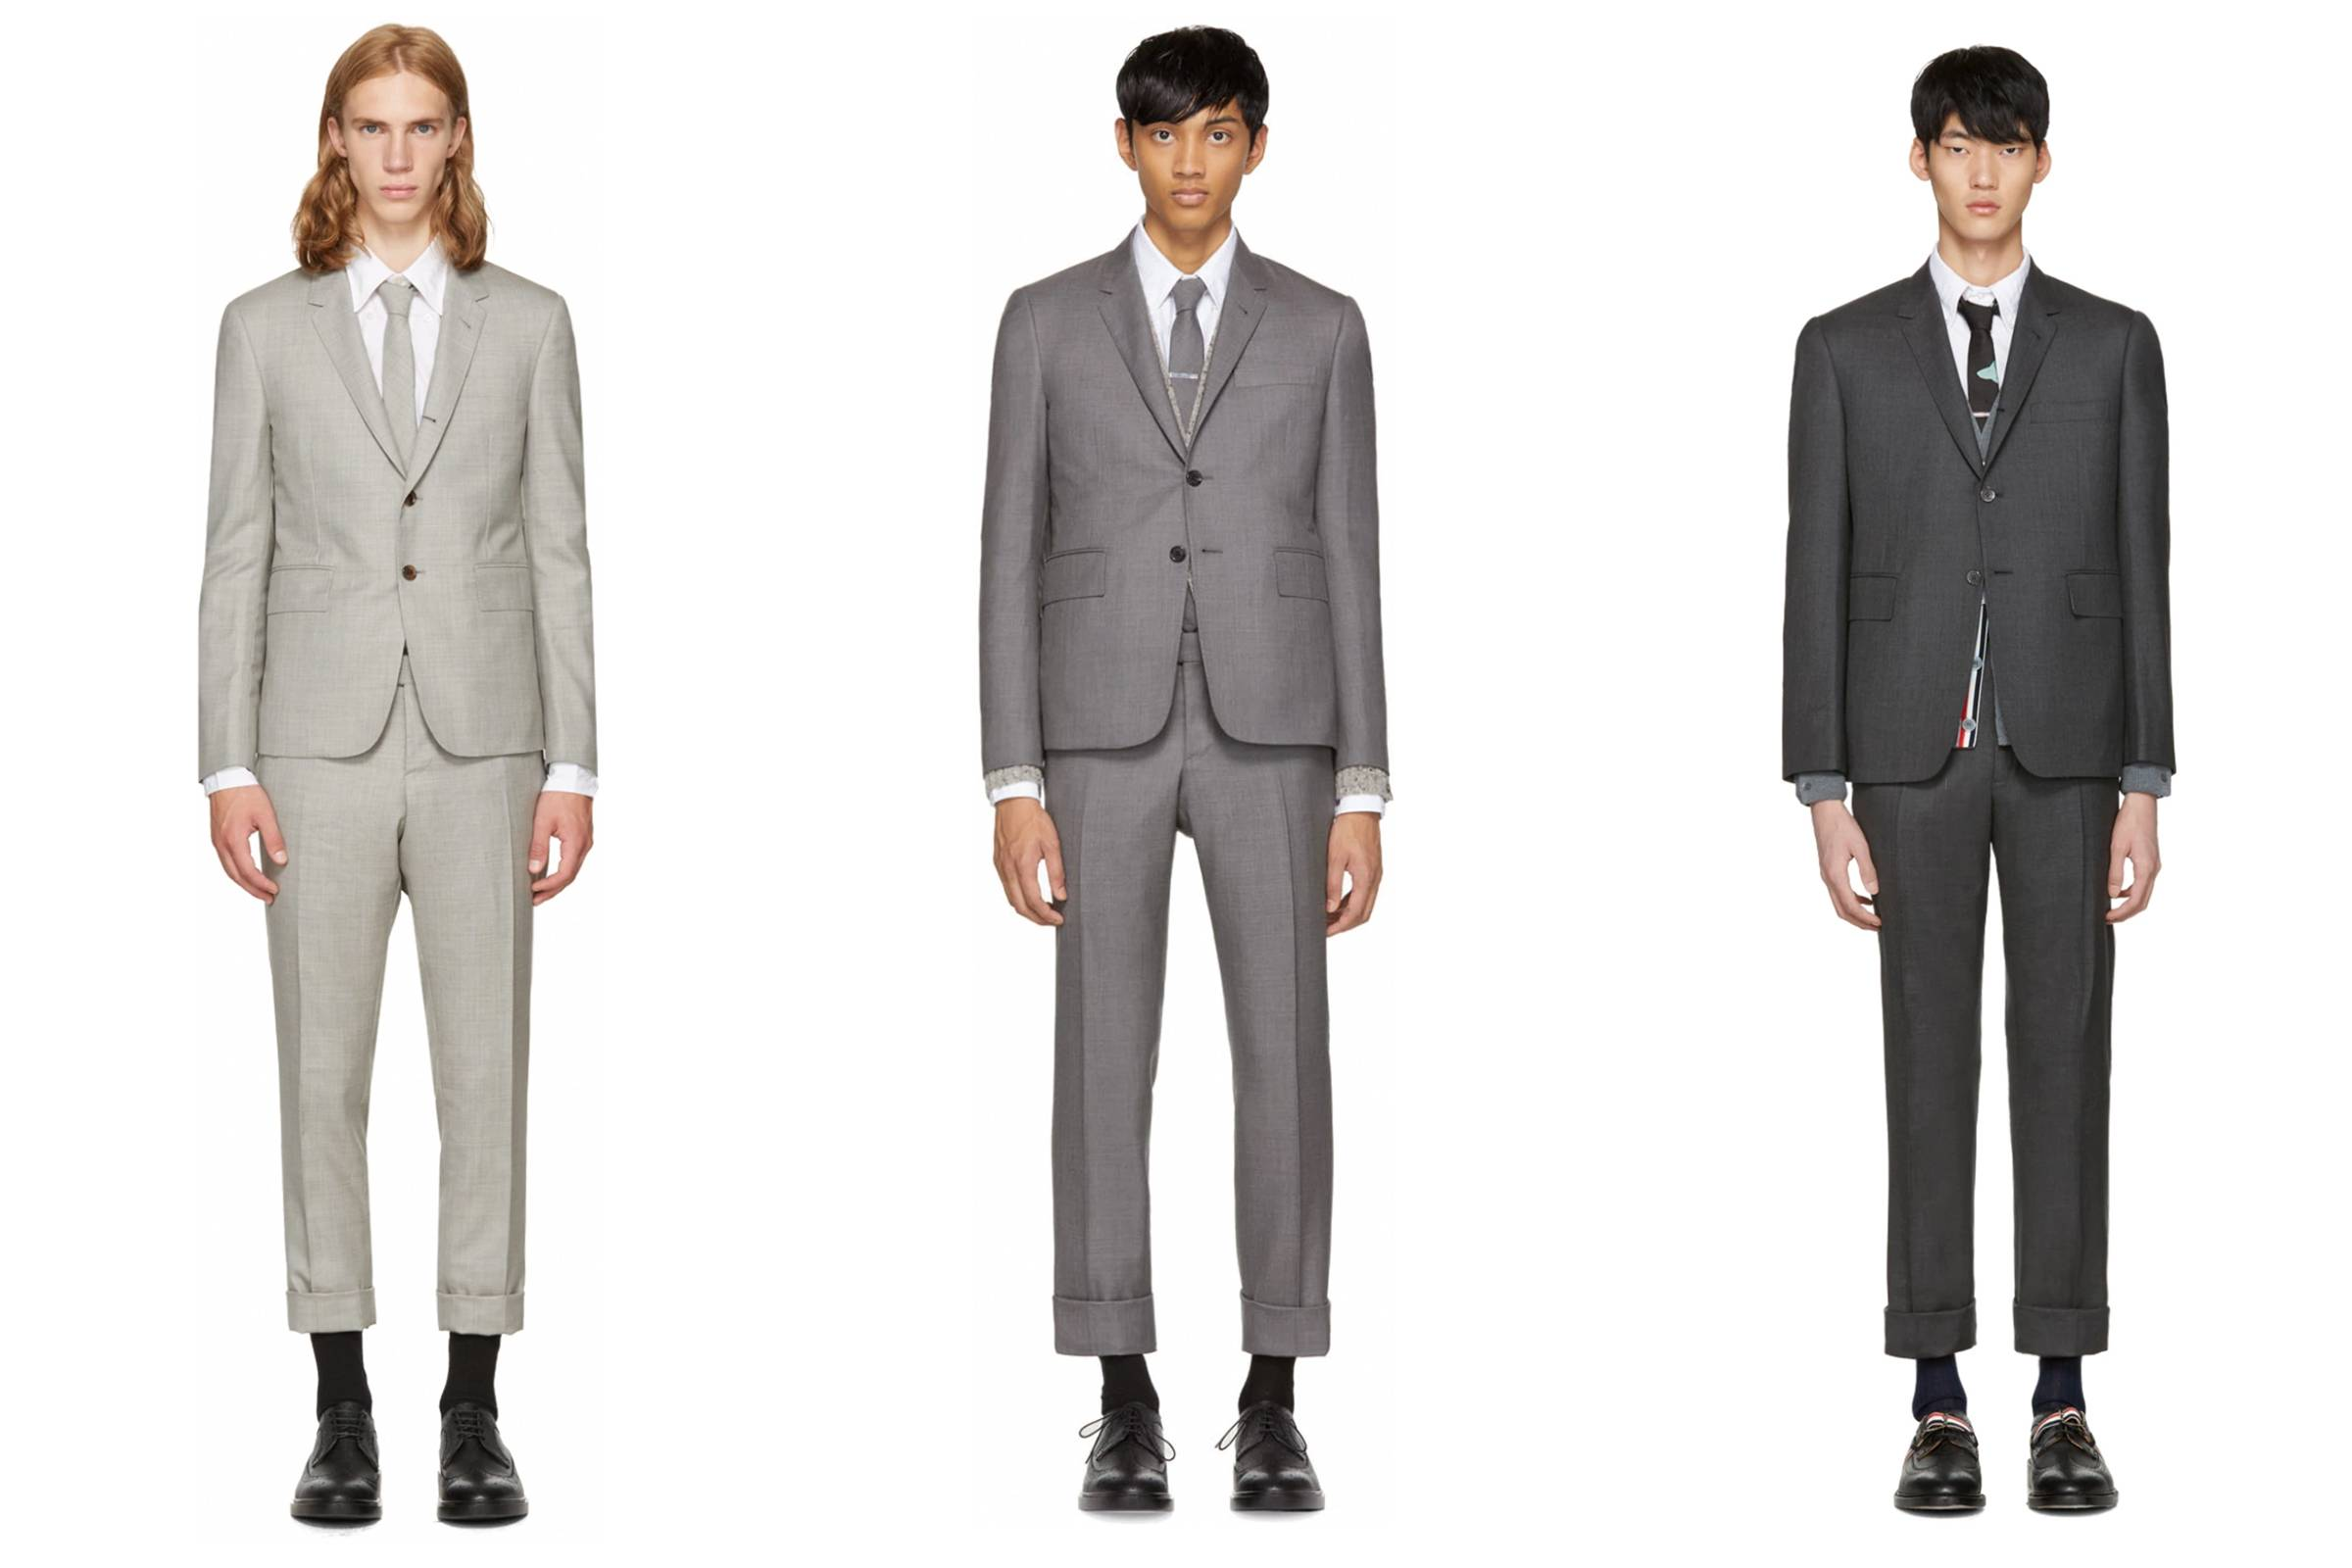 The classic Thom Browne silhouette